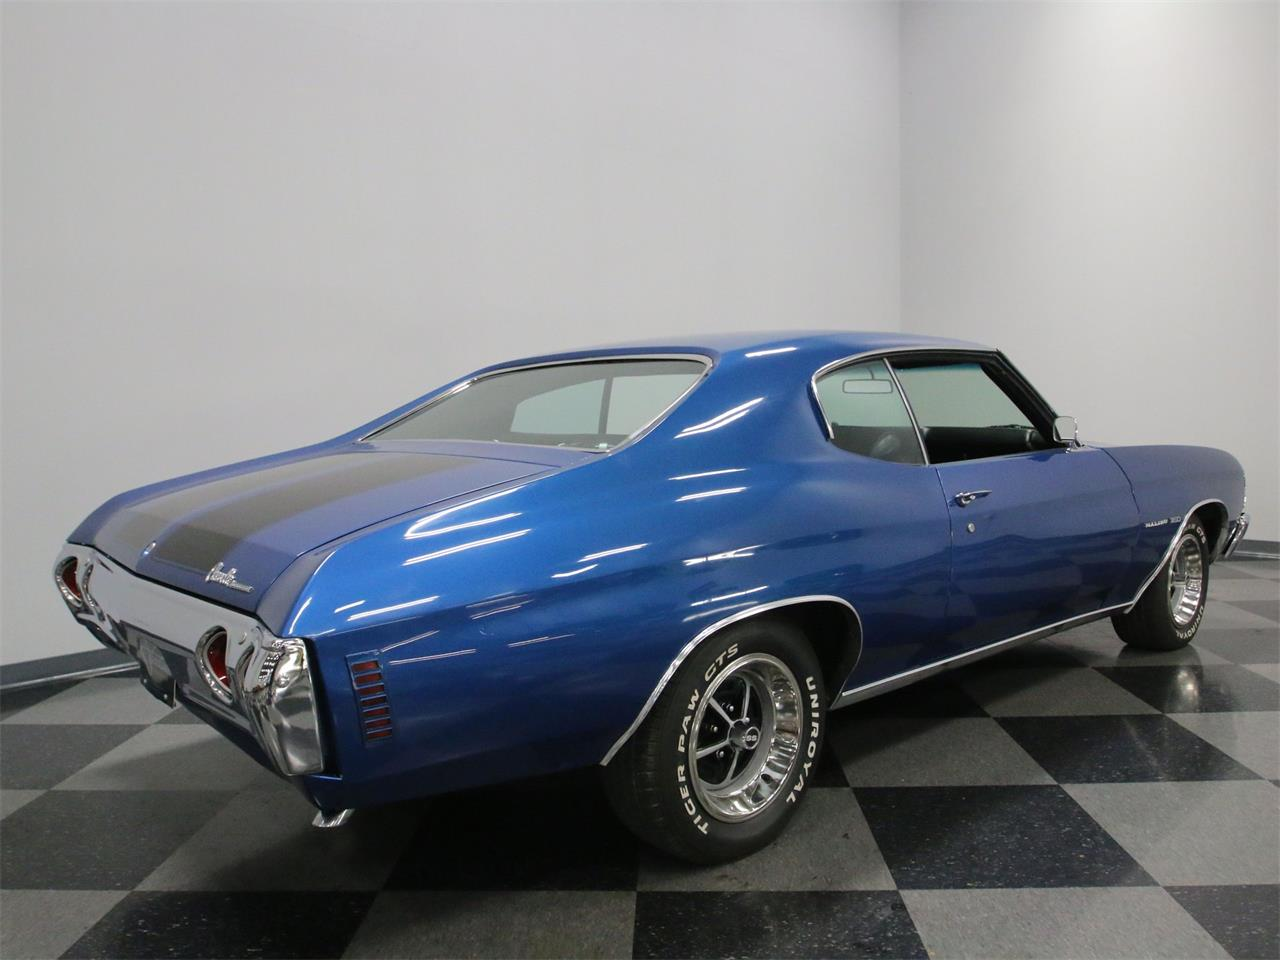 1971 Chevrolet Chevelle Malibu (CC-1329910) for sale in Aviston, Illinois